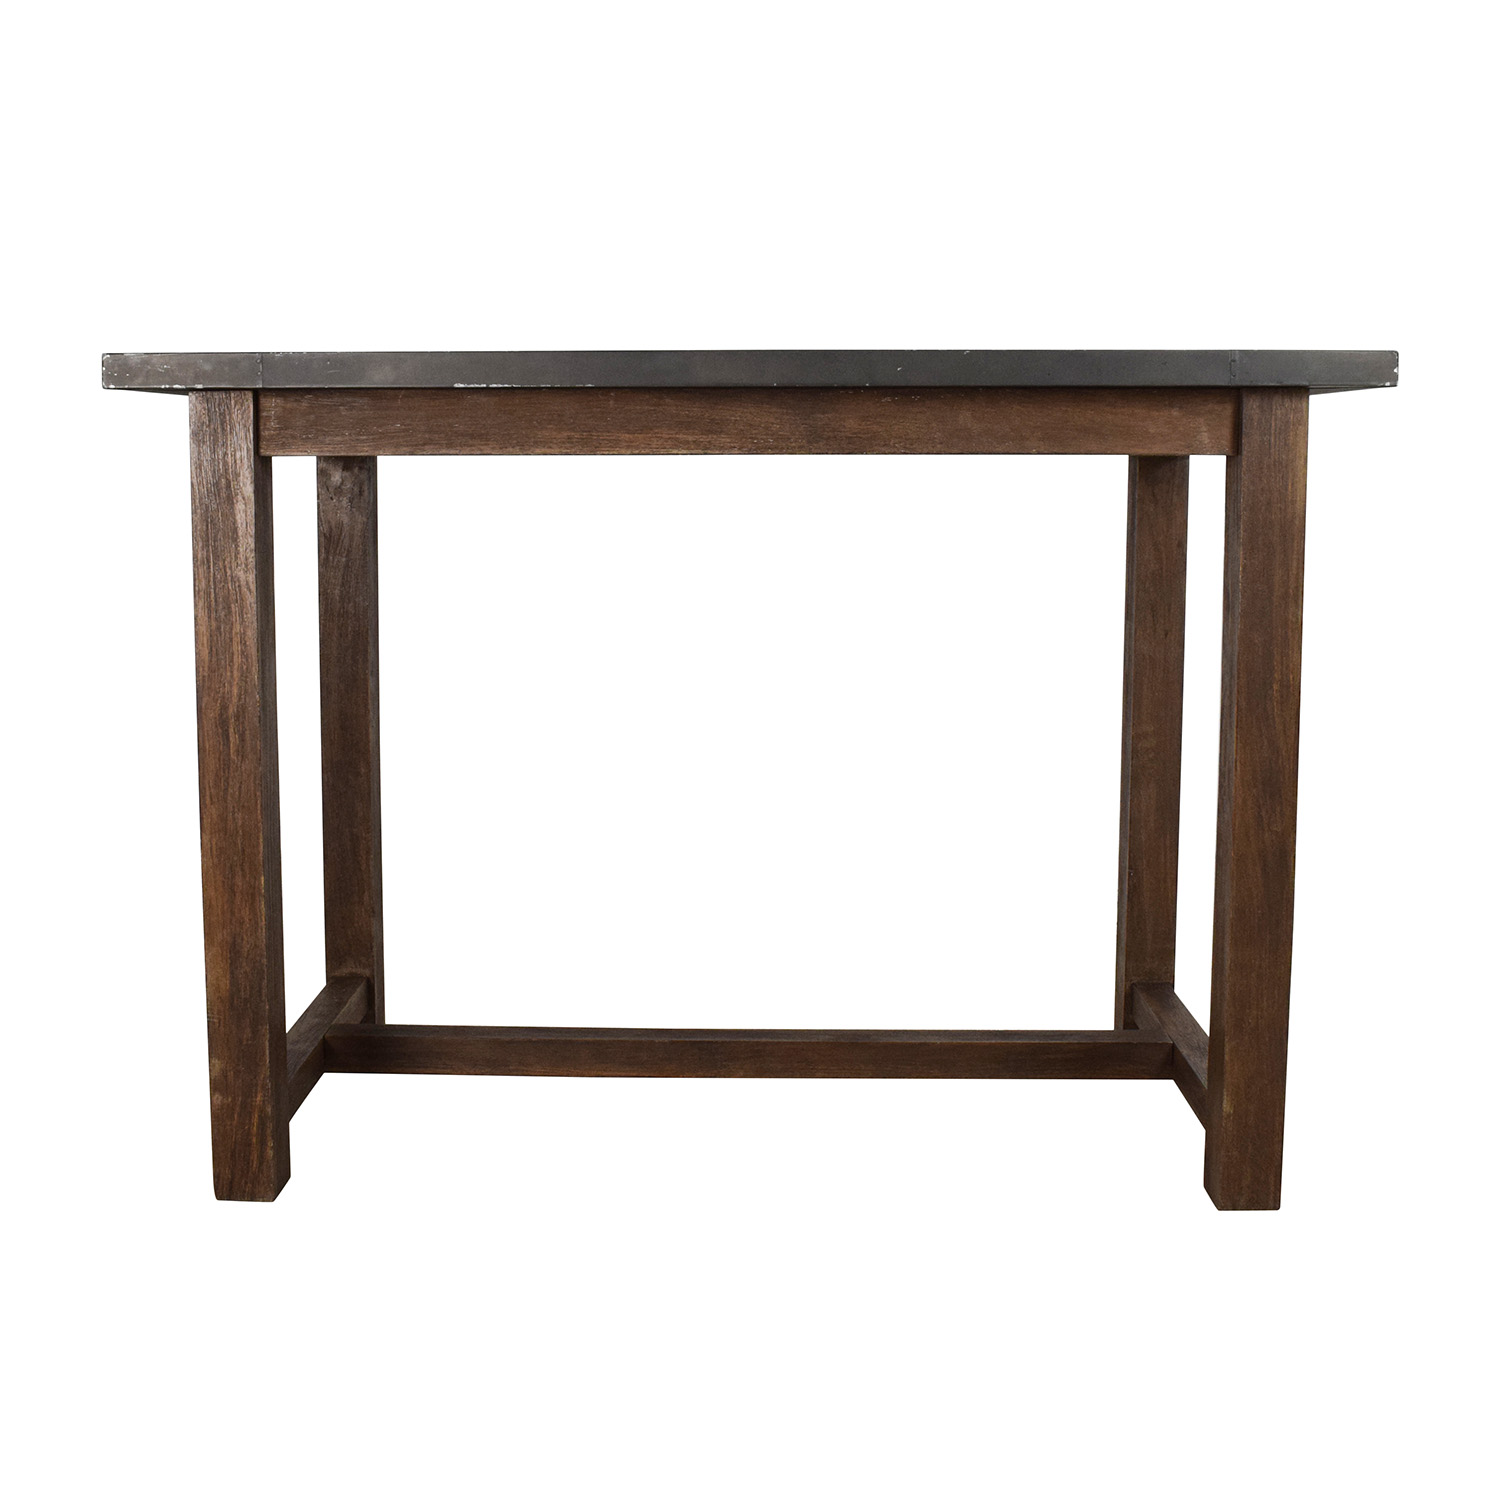 69% OFF Crate and Barrel Crate & Barrel Galvin High Table Tables